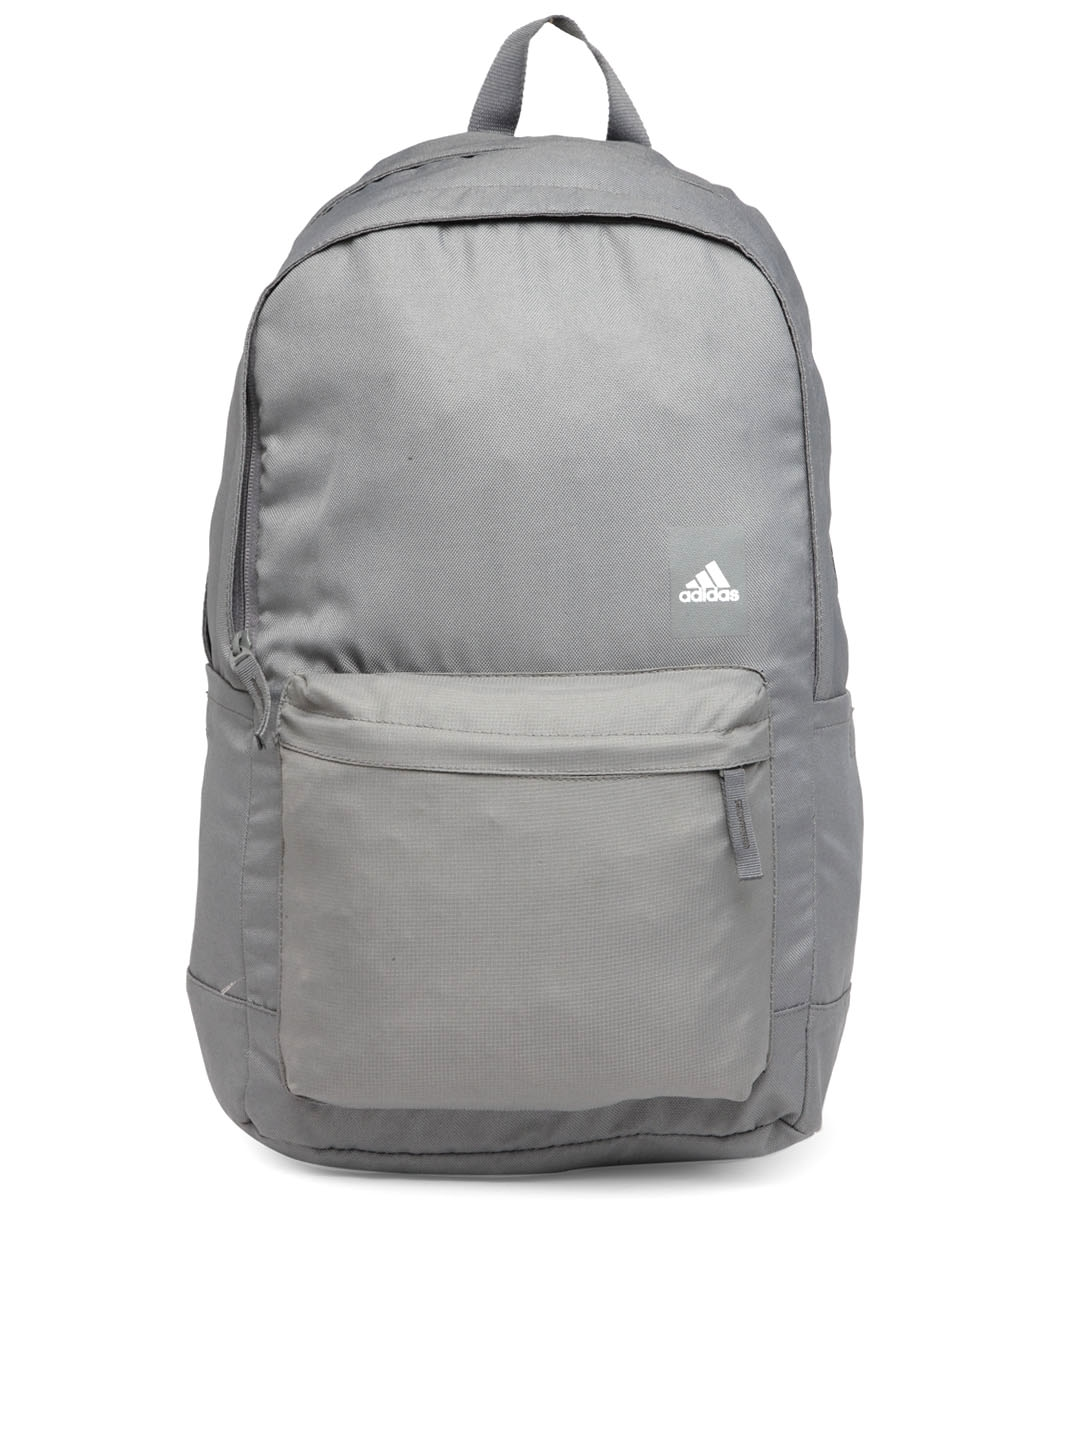 a40bfab61 Buy ADIDAS Unisex Grey Classic BP M 2C Backpack - Backpacks for ...